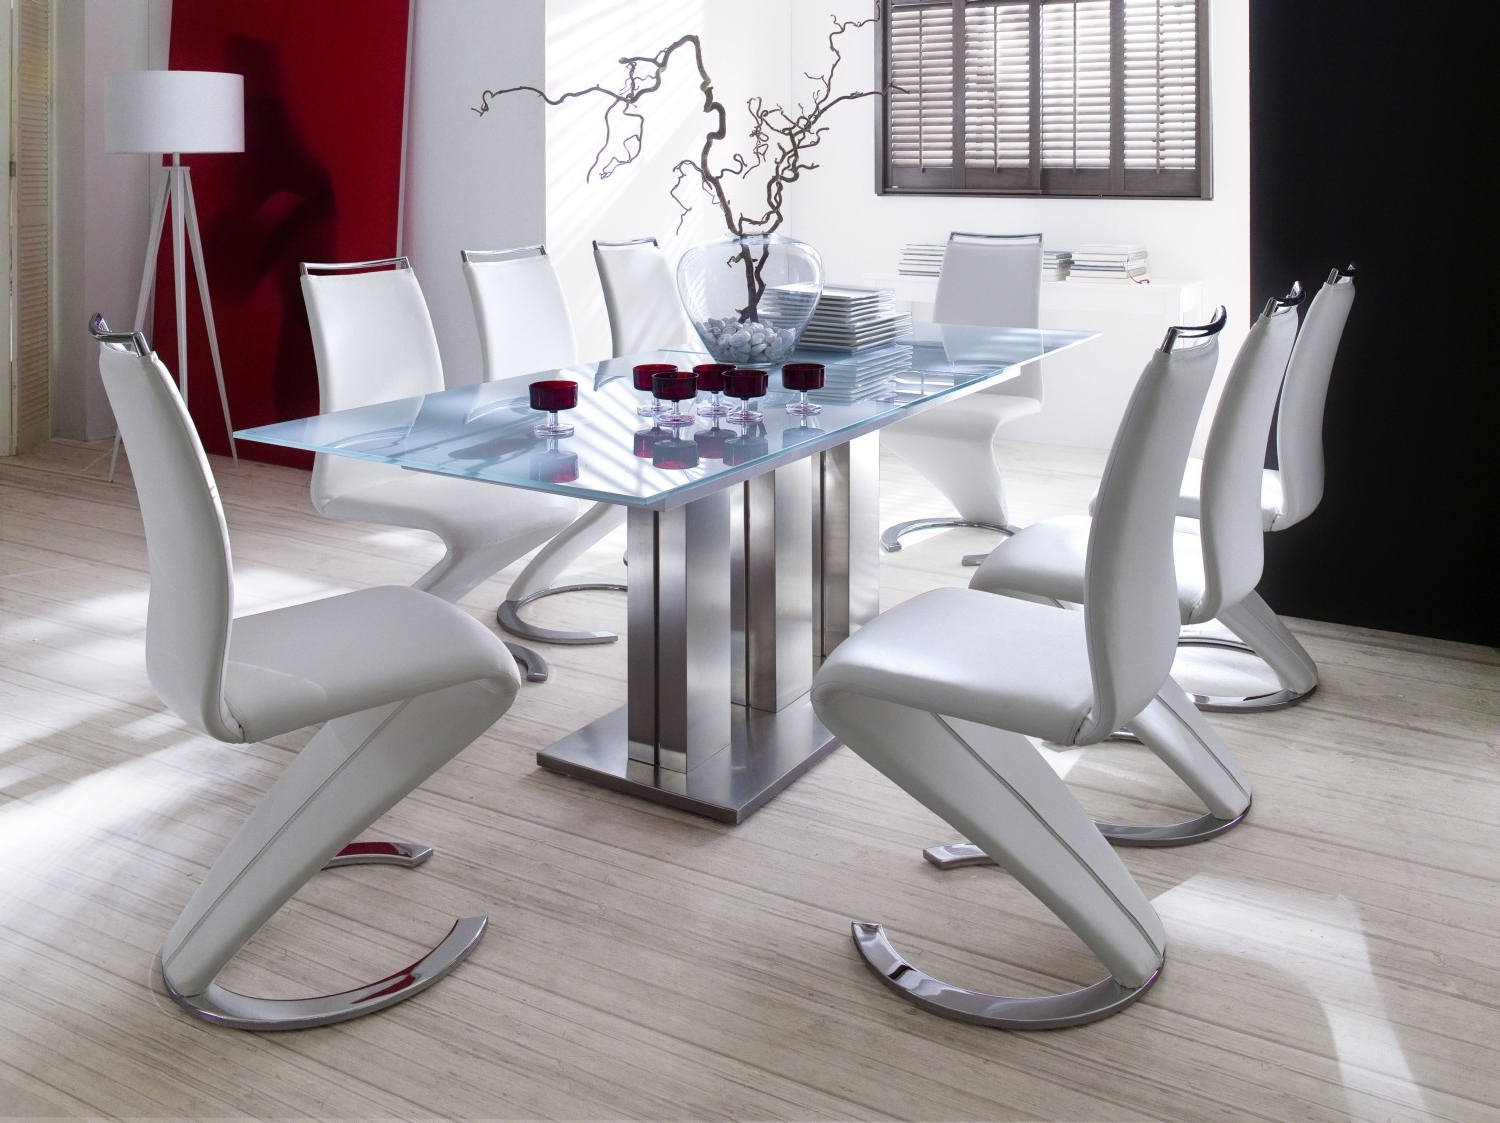 Luxury Modern Dining Room Tables — Bluehawkboosters Home Design With Popular Modern Dining Room Sets (View 9 of 25)